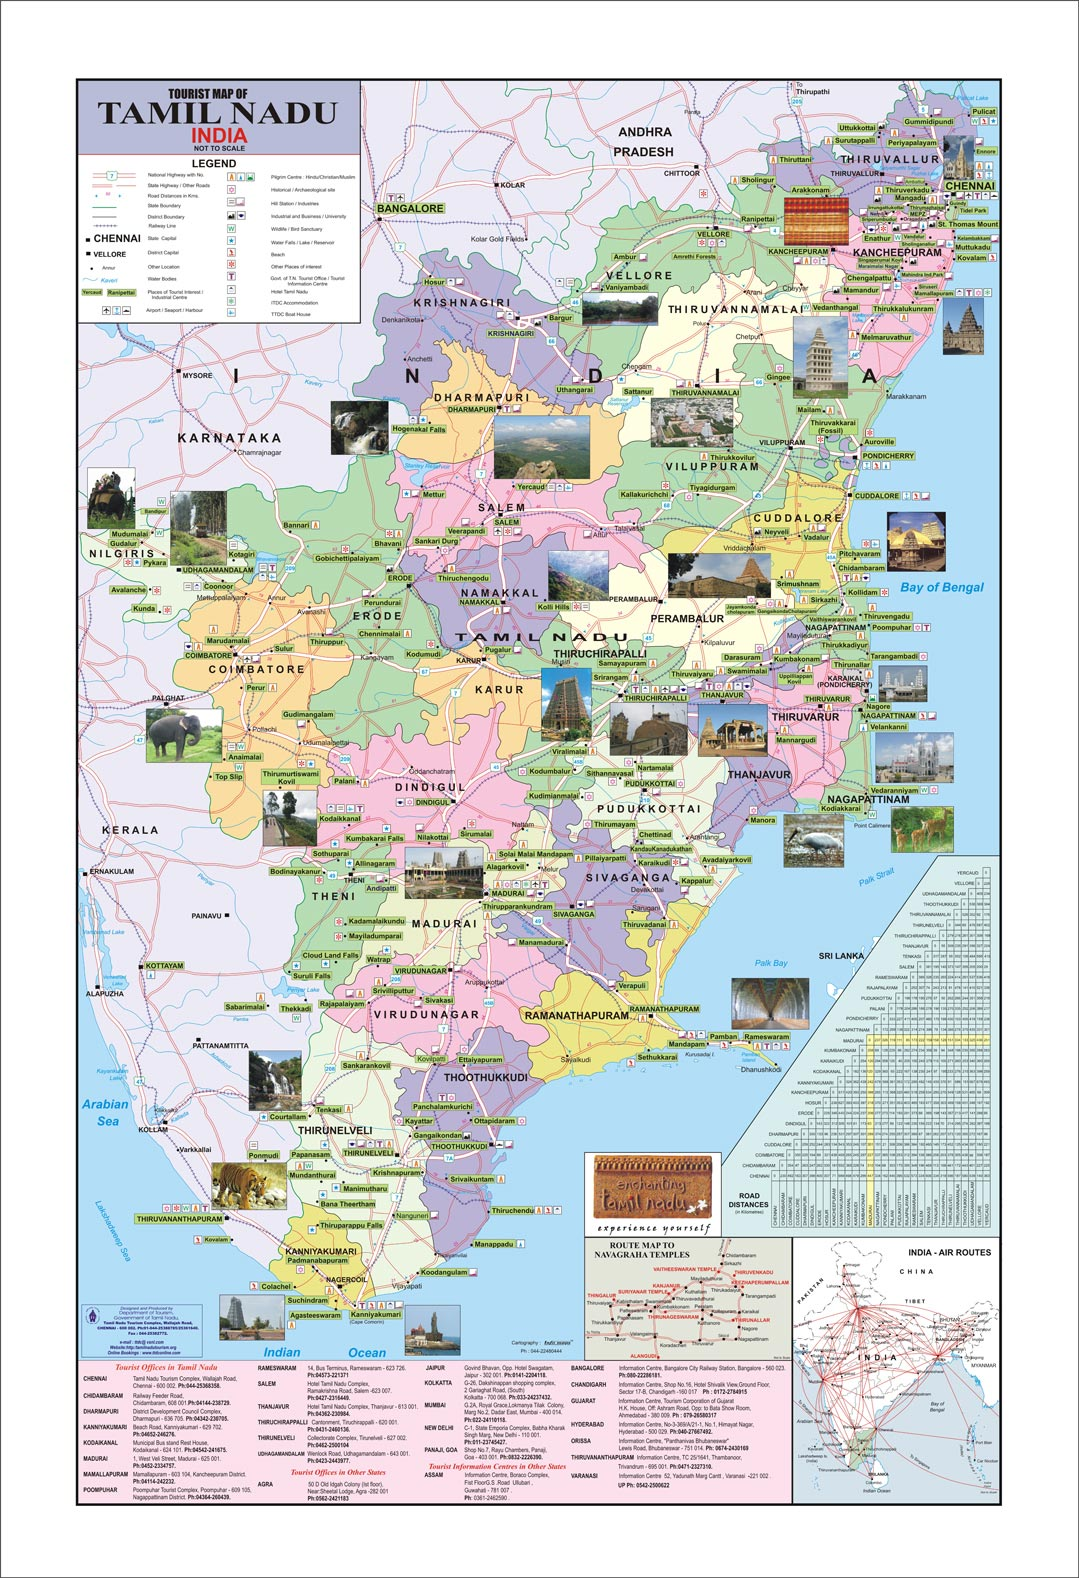 TAMILNADU TOURISM – South India Map With Tourist Places